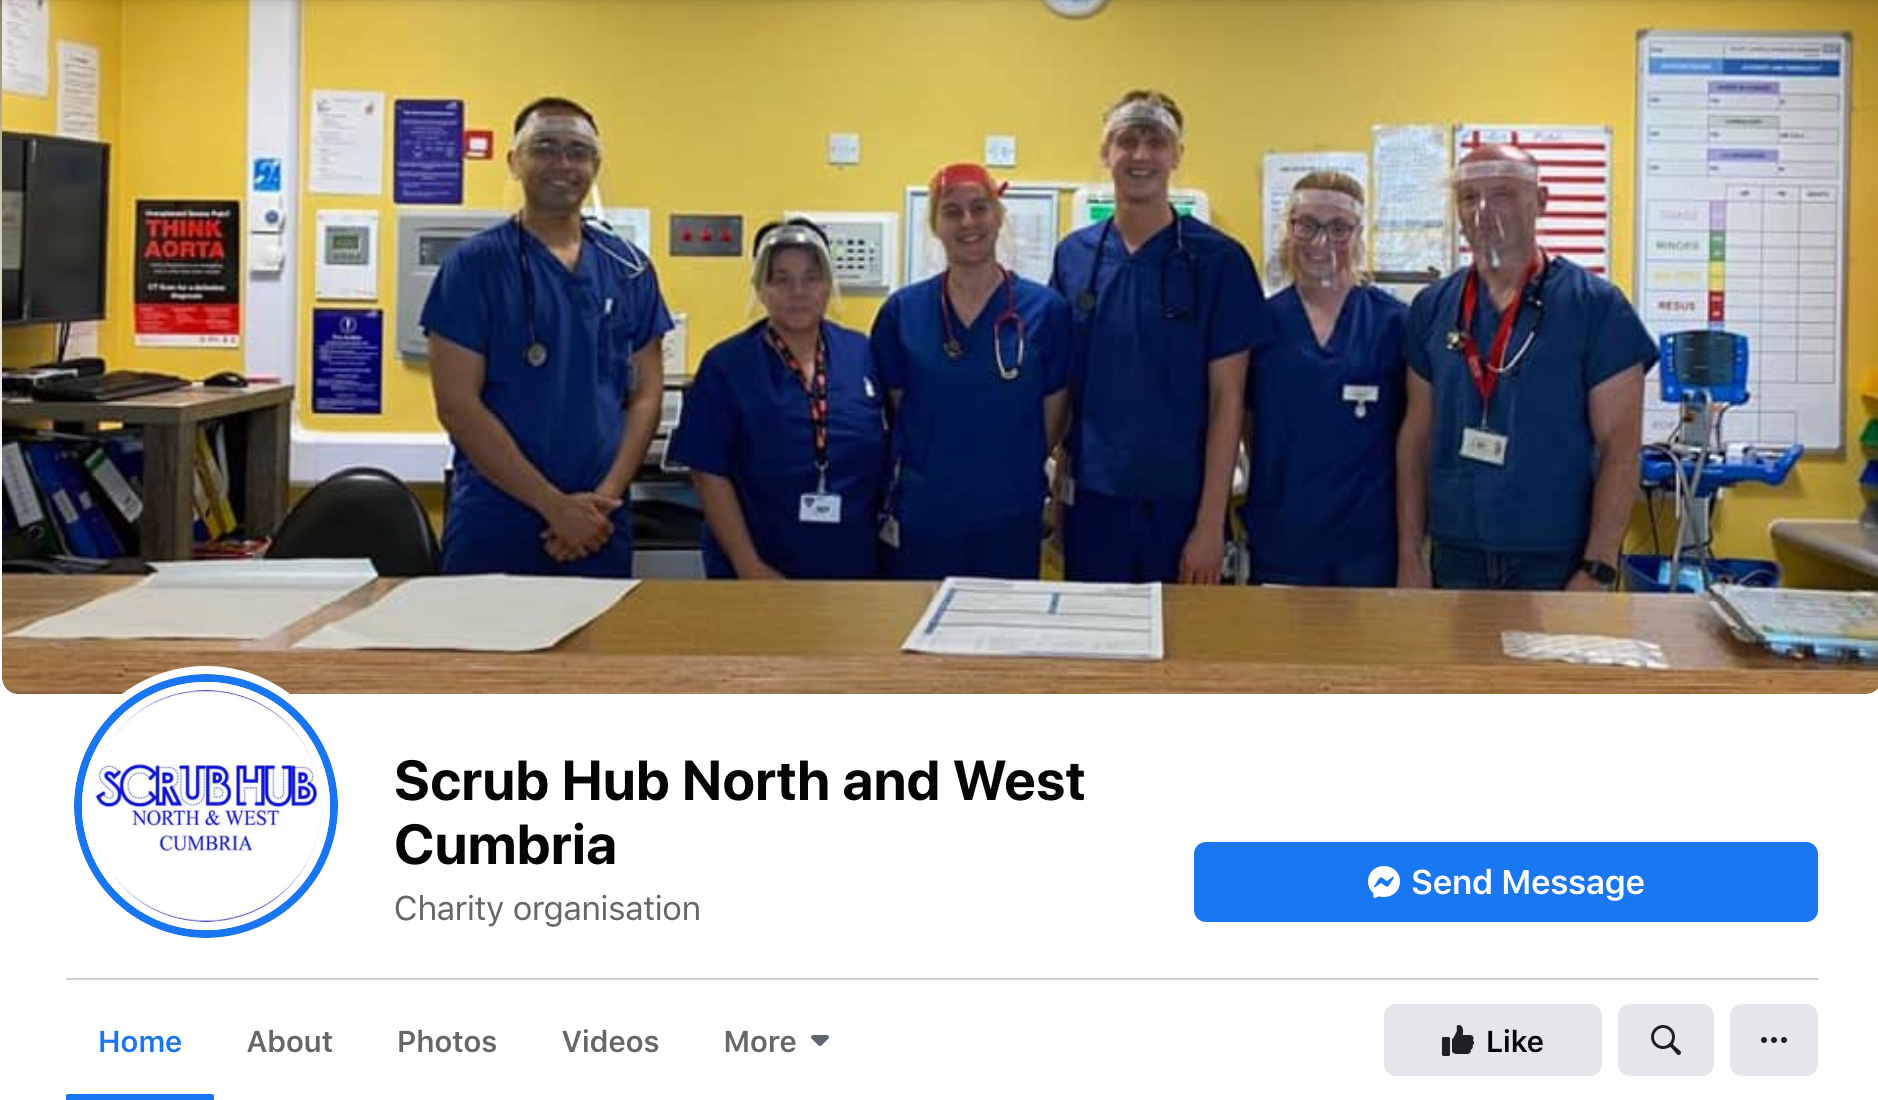 The North West Cumbria Scrub Hub